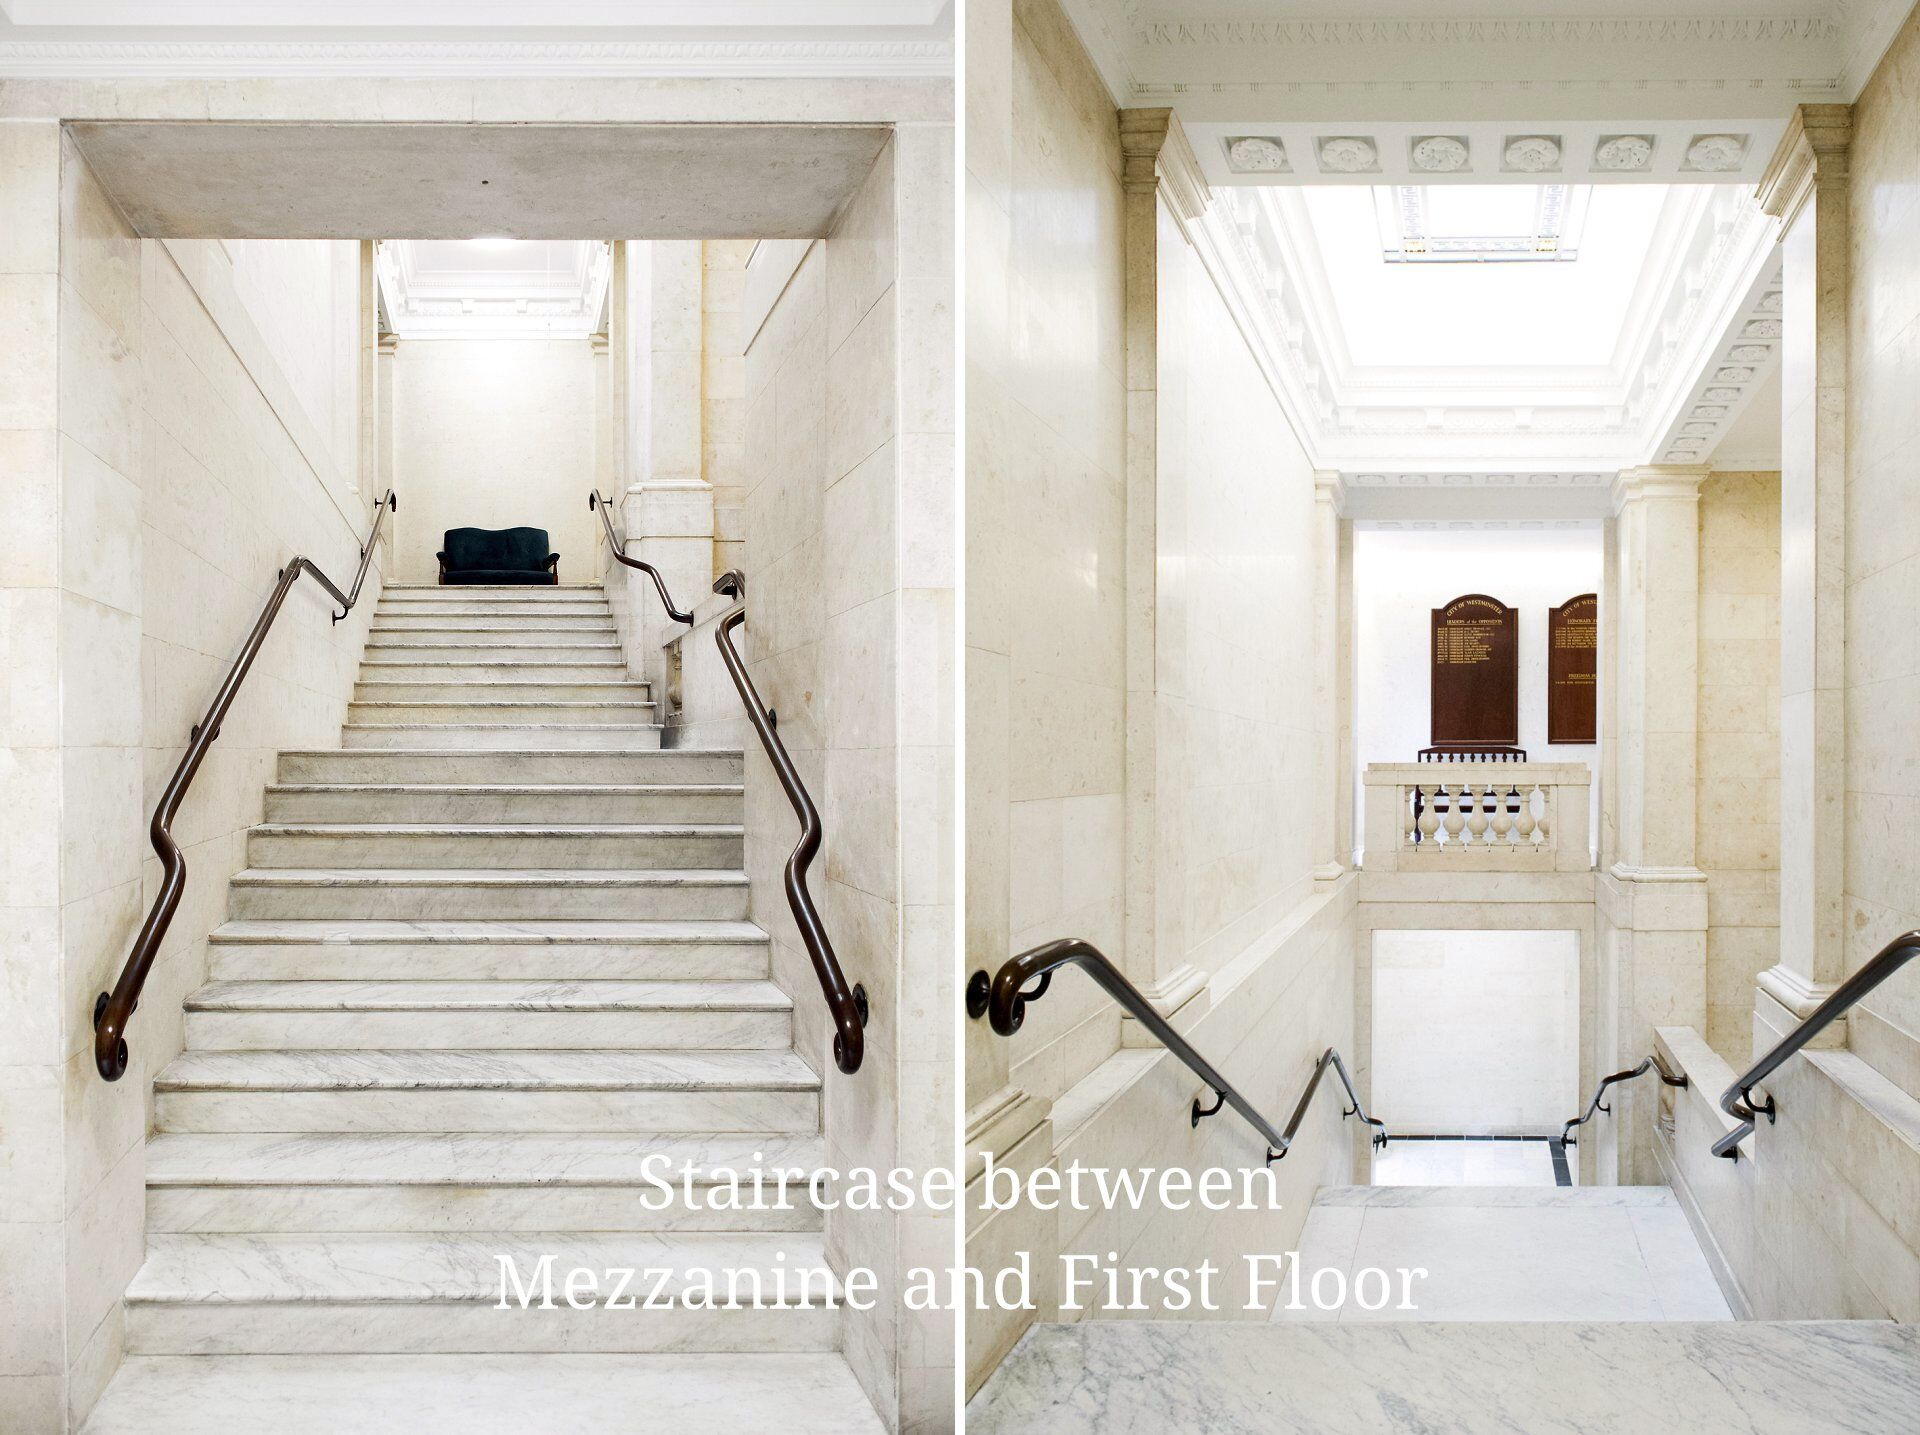 Side staircase inside Old Marylebone Town Hall and the view from the mezzanine level up to the first floor and then from the first floor down to the mezzanine level